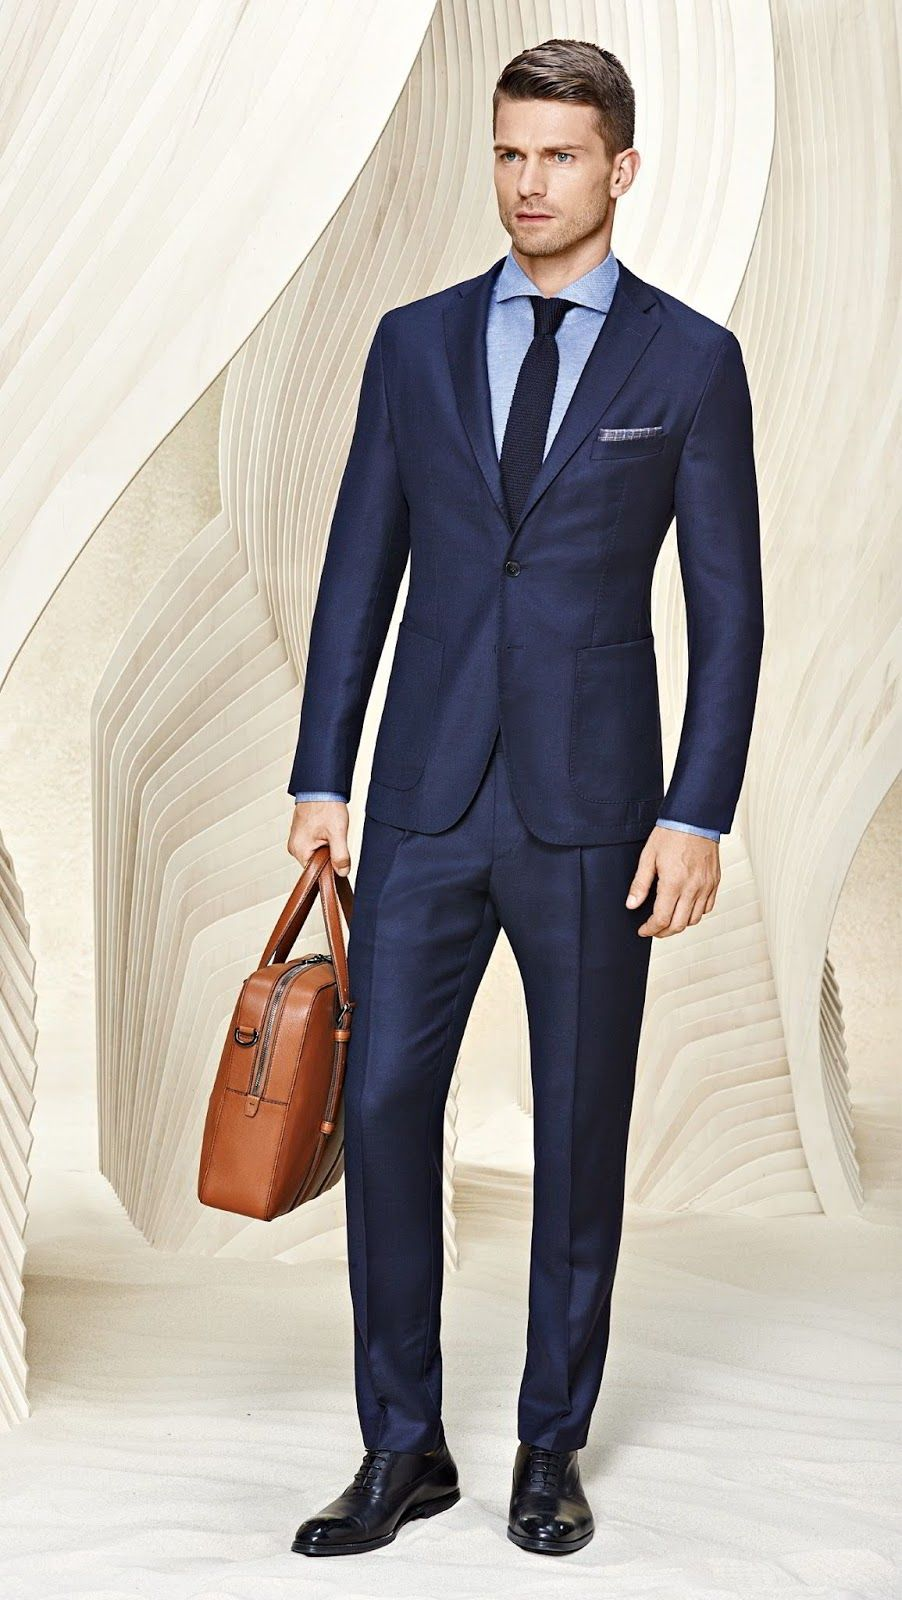 Hugo Boss Resort 2016 Collection | Suits, Style and Fashion trends